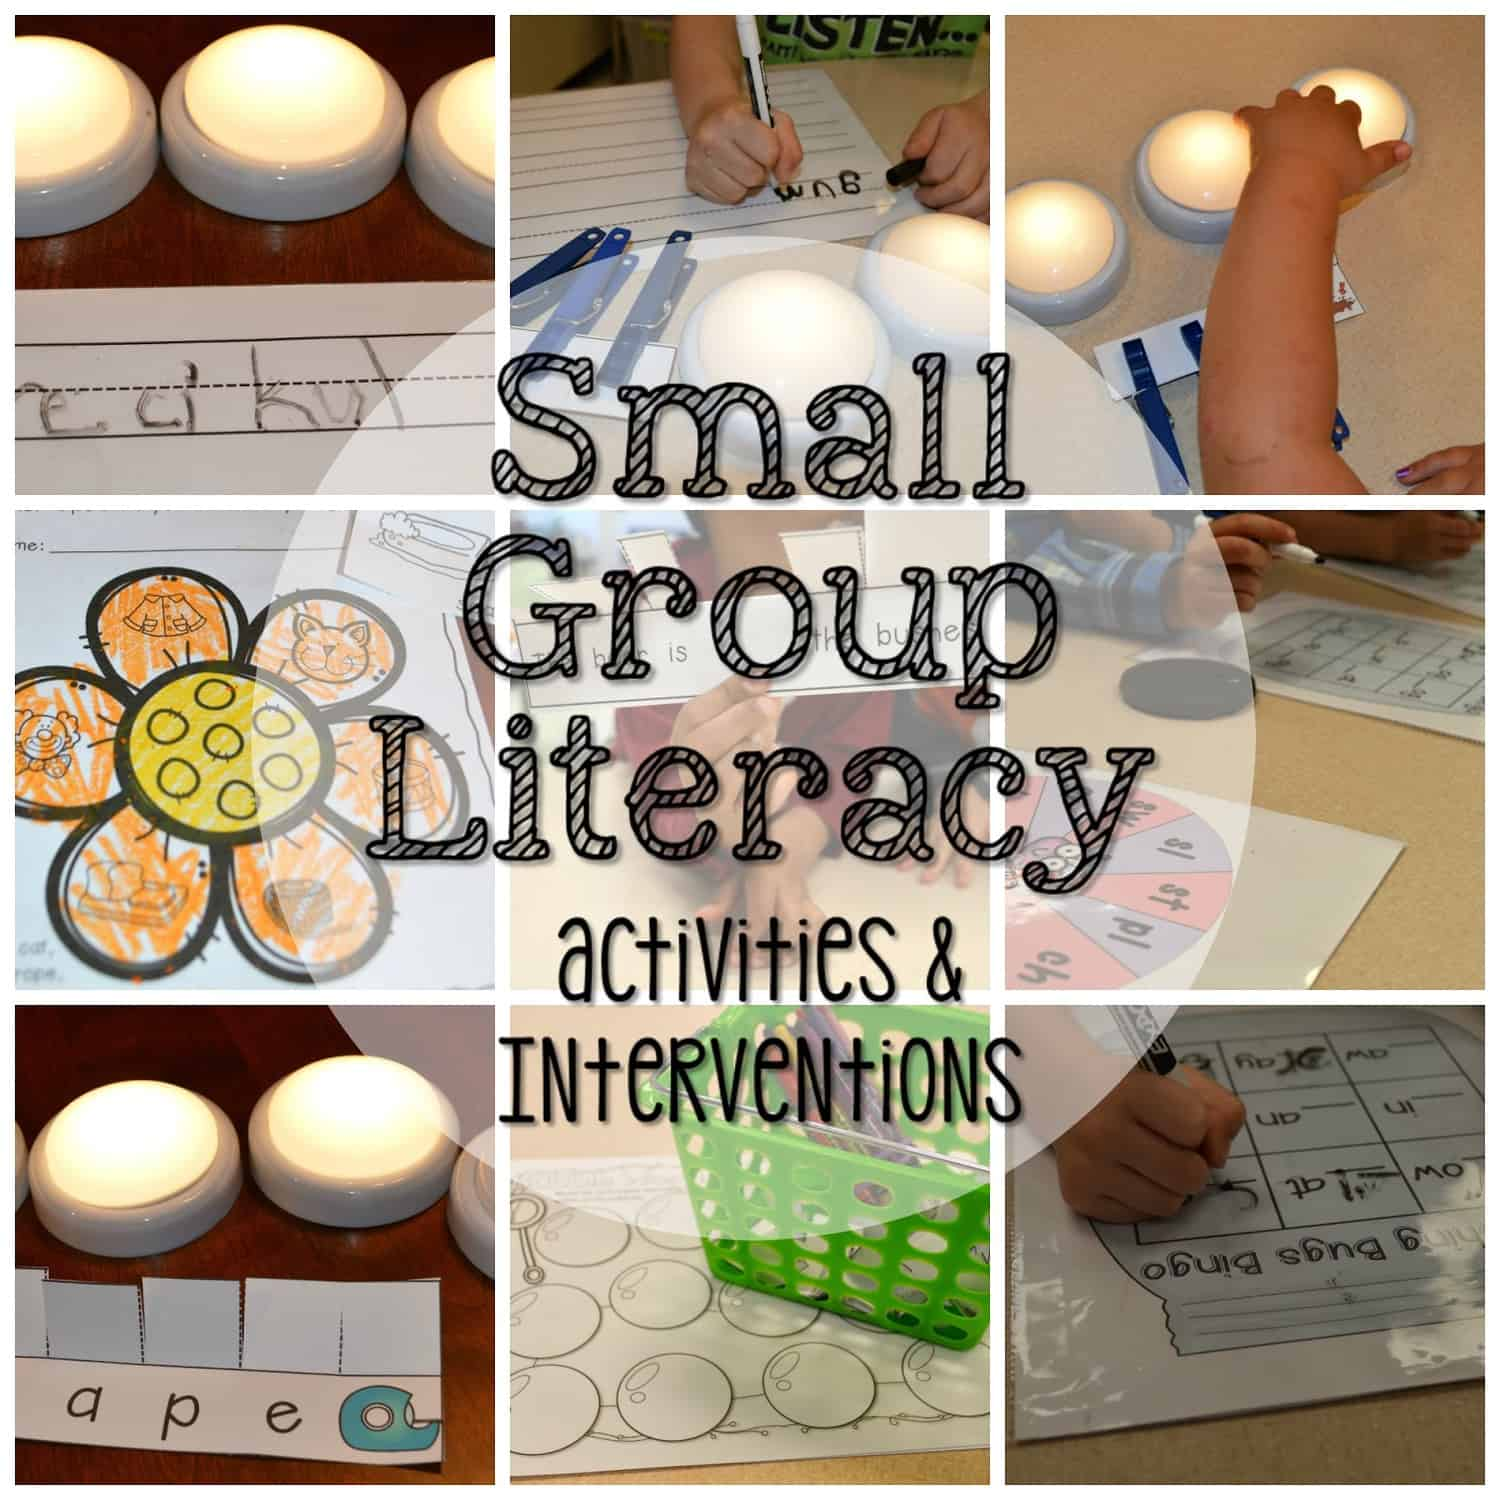 Small Group Activities and Interventions for April 1